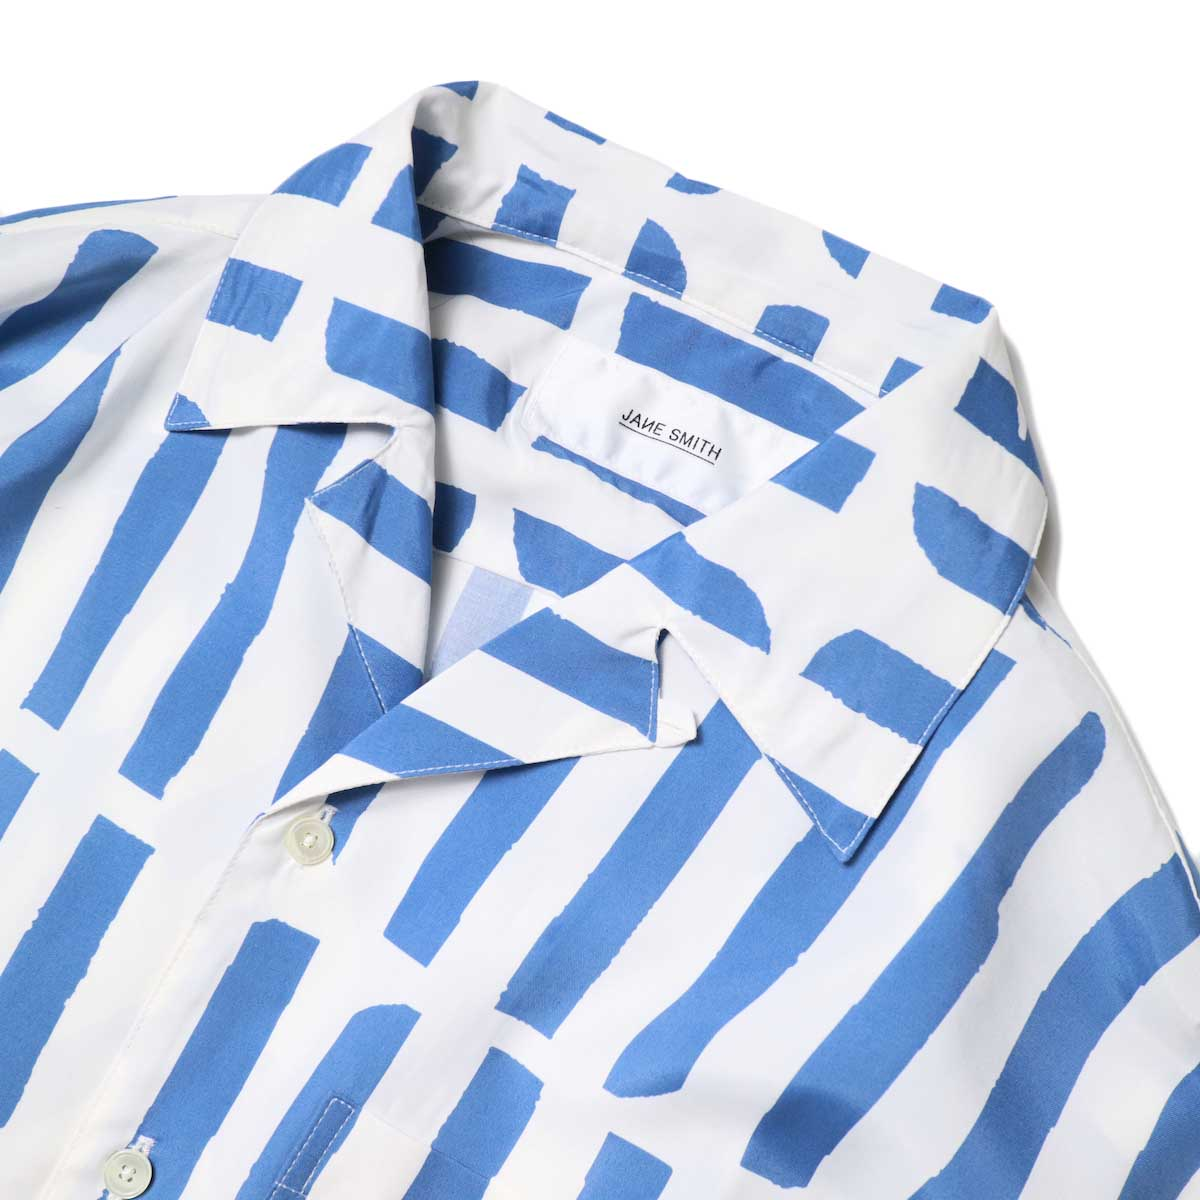 JANE SMITH / OPEN COLLAR SHIRTS S/S (White Blue) フロントアップ